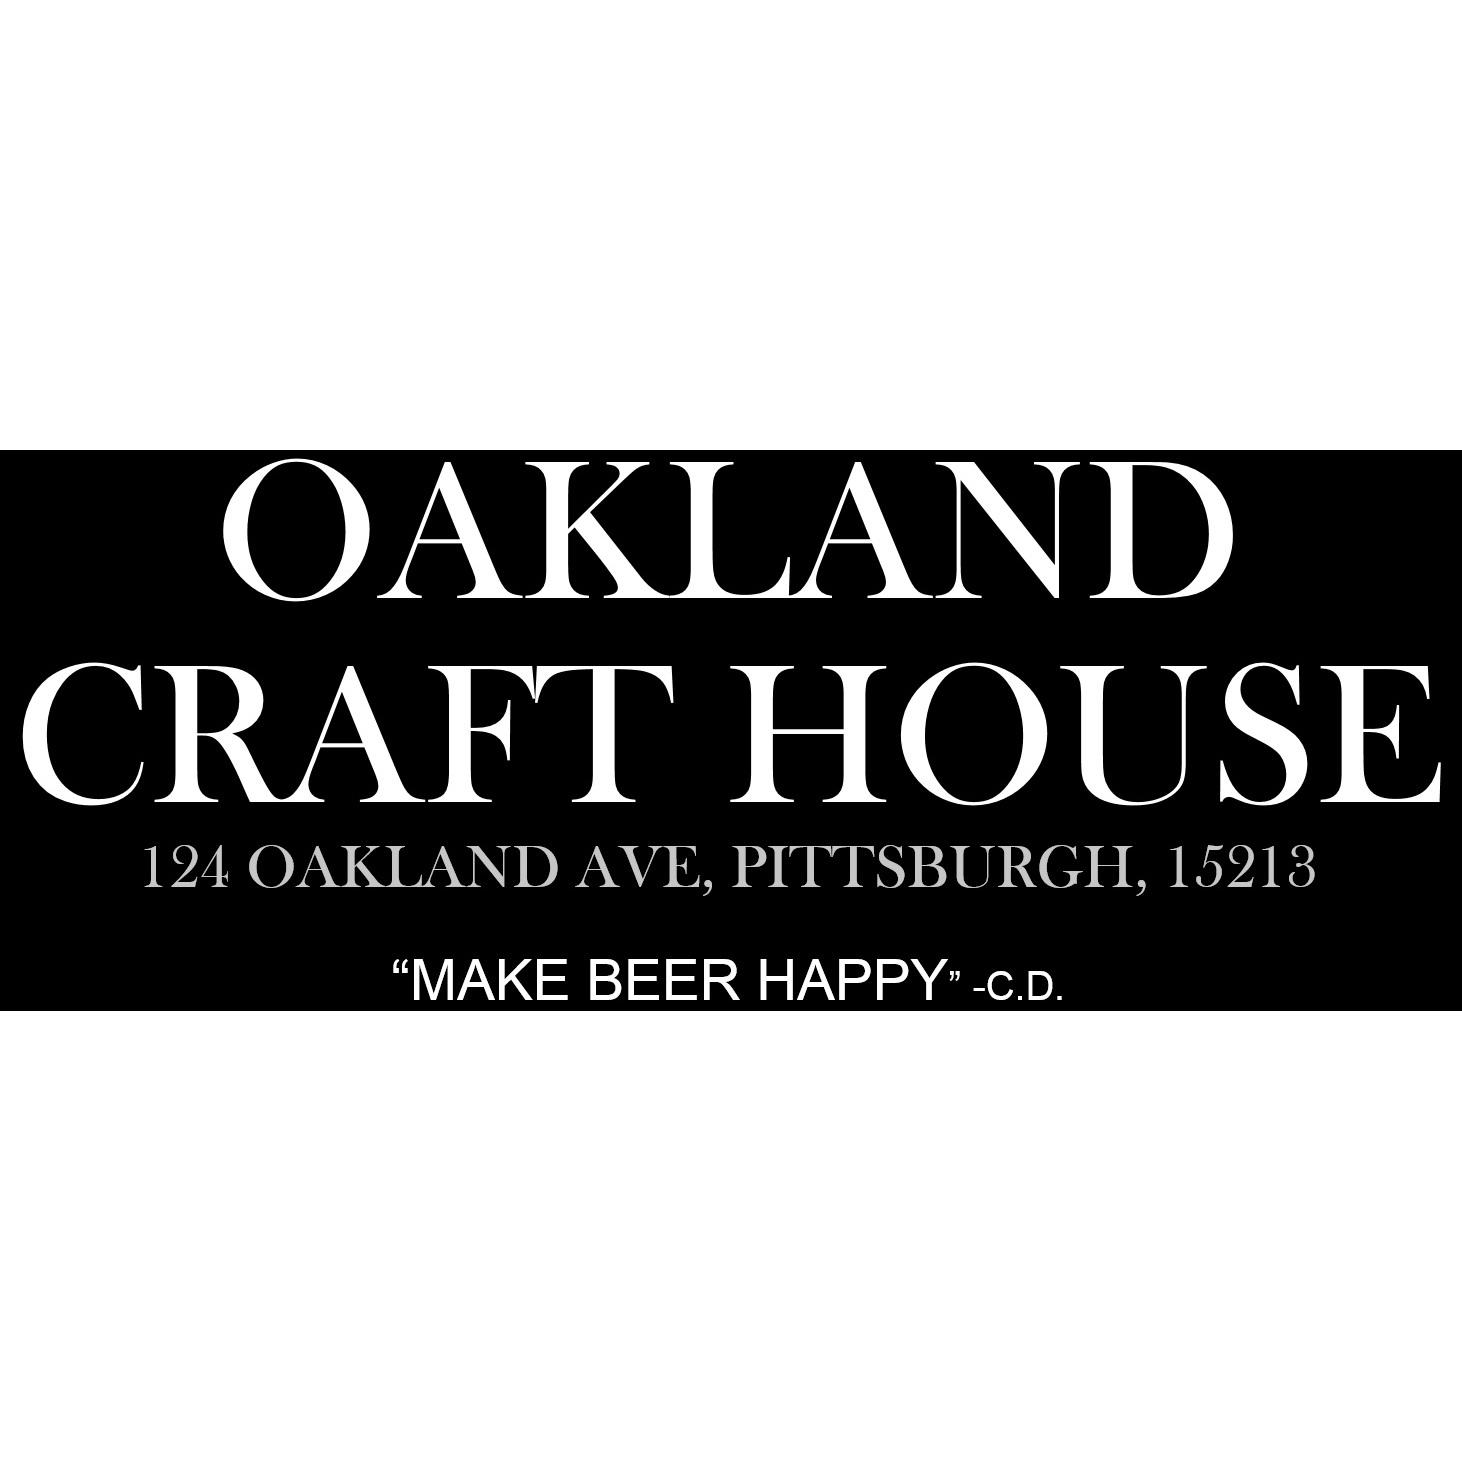 Oakland Craft House